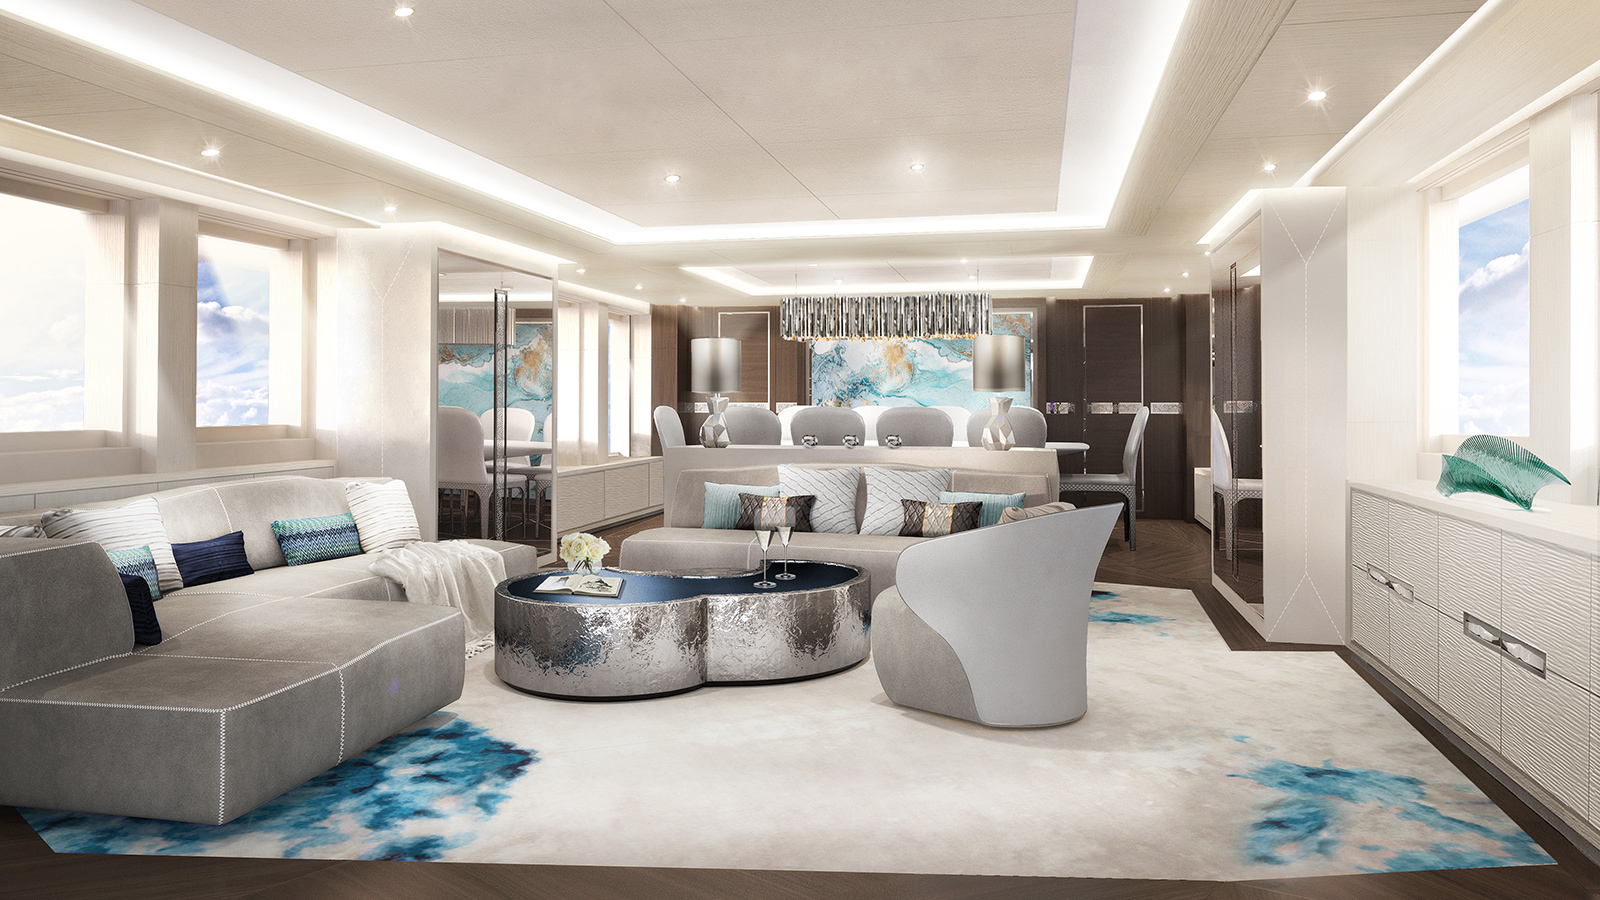 the-saloon-of-Omaha-by-heesen-yachts